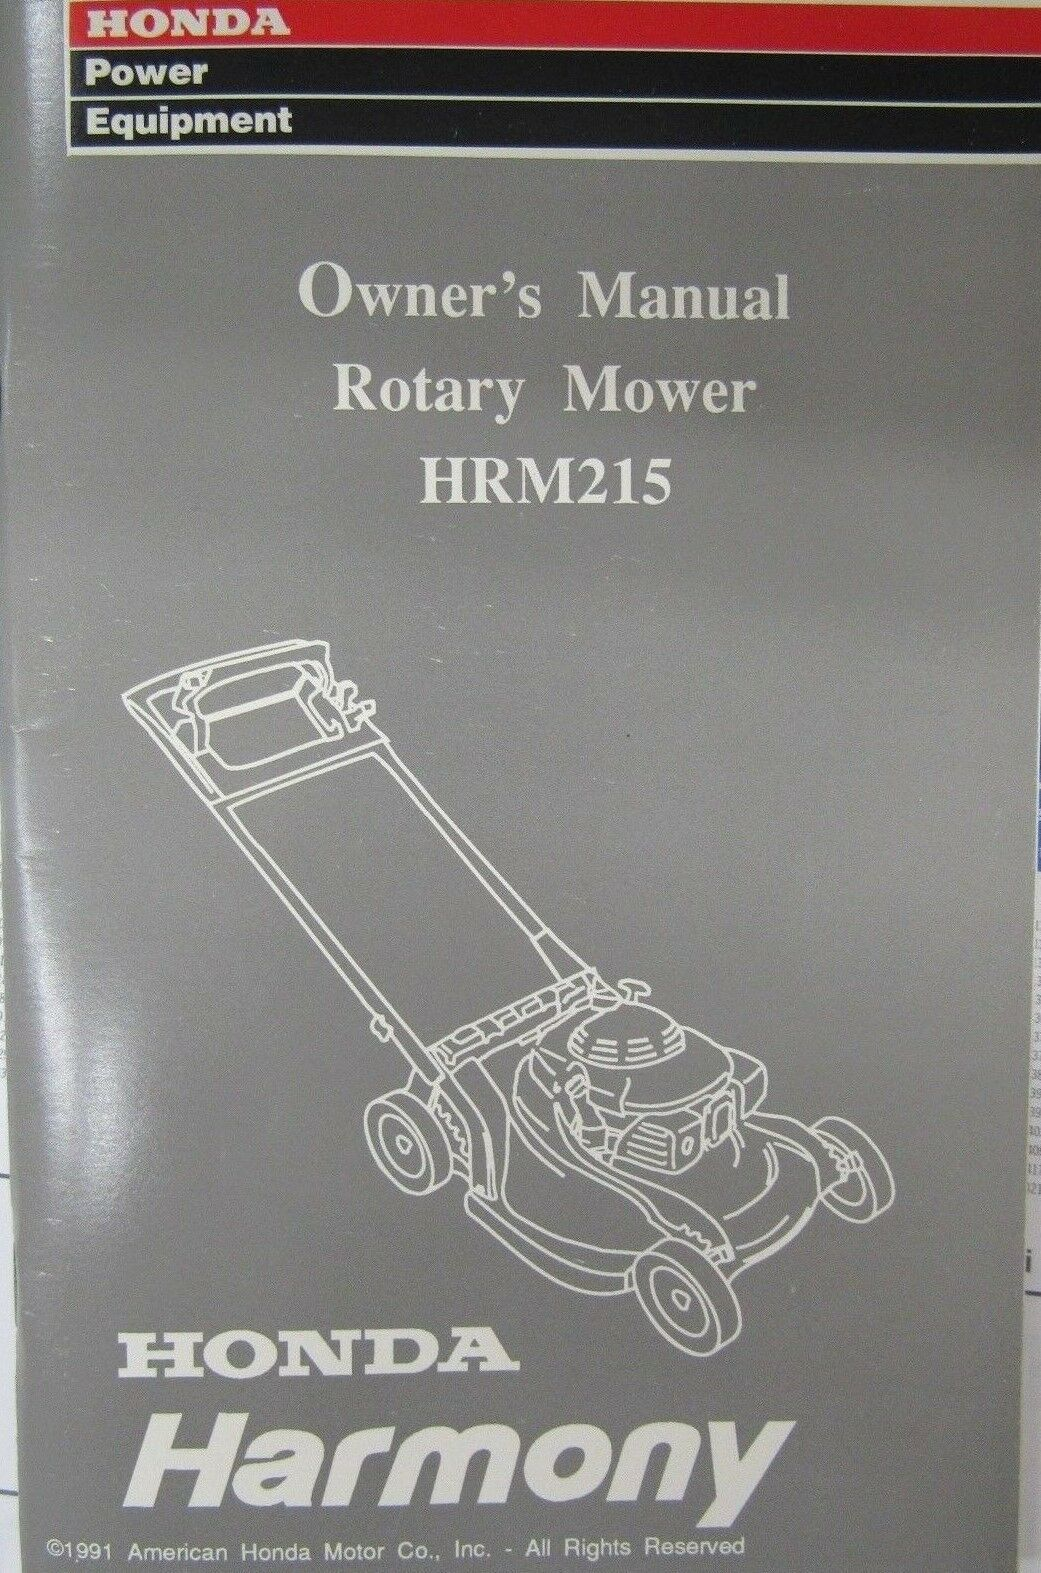 honda owner s manual for rotary mower hrm215 ebay rh ebay com Honda Harmony HRB215 Lawn Mower Honda Harmony HRM 215 Manual